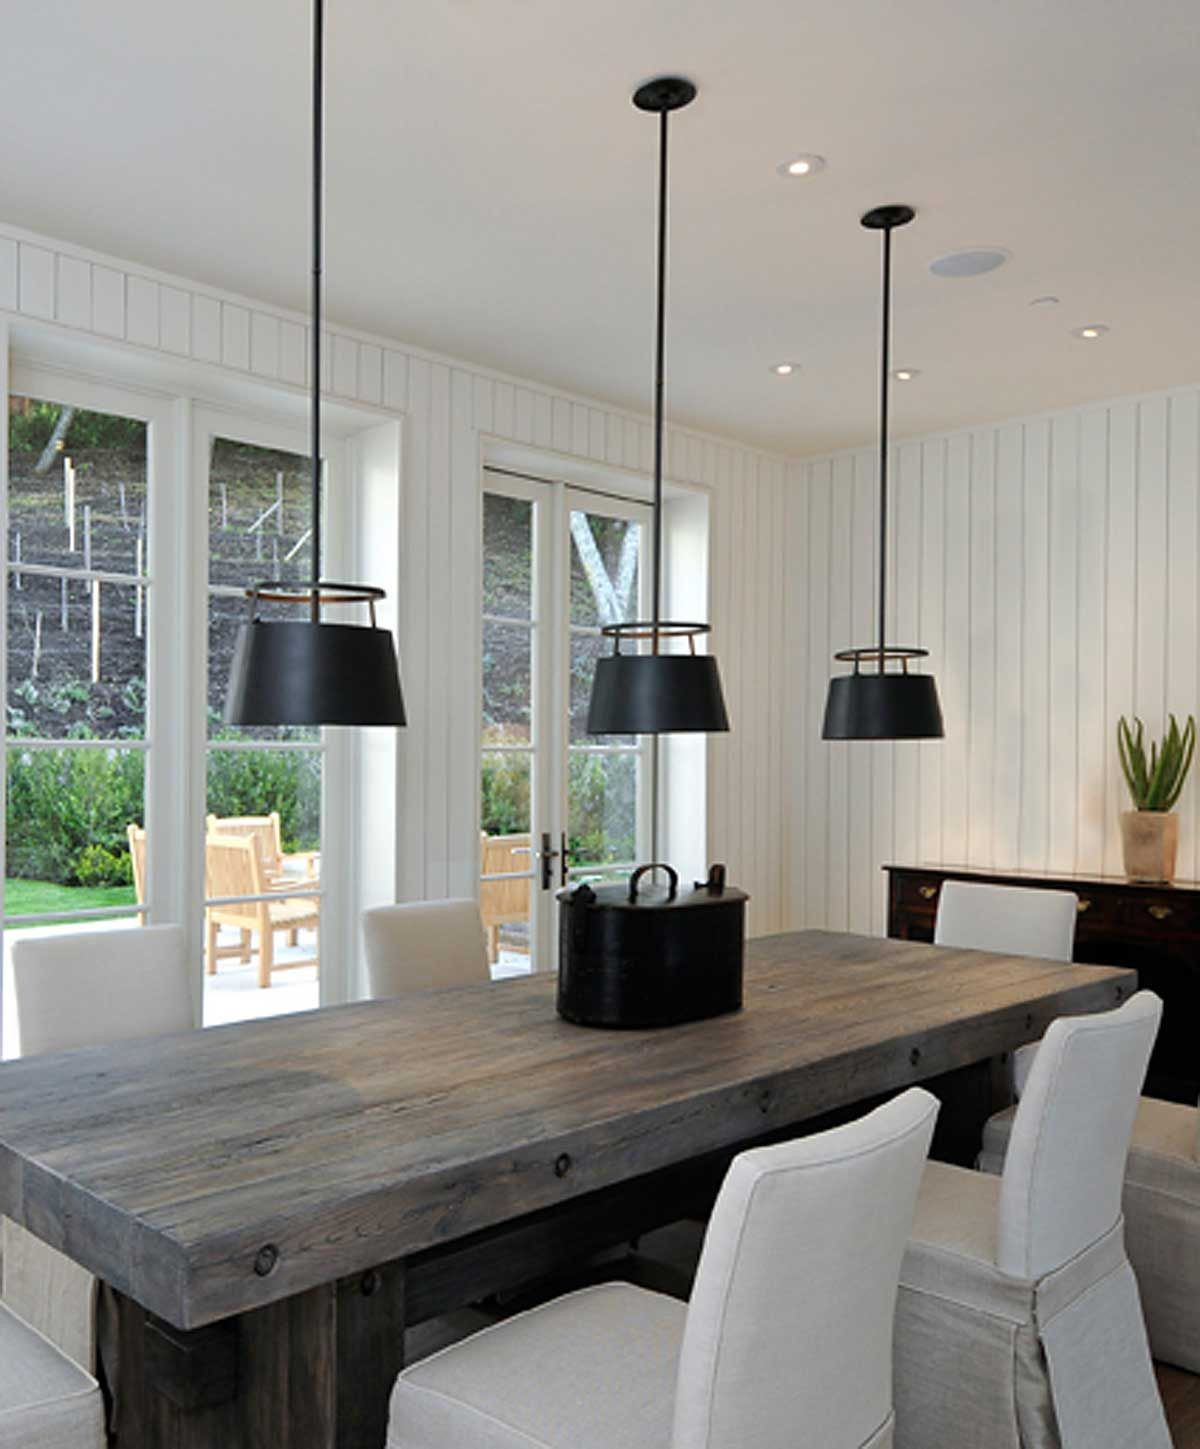 UECo Portfolio Environment Dining Rustic Wood Table Love The Light Fixtures Cottage